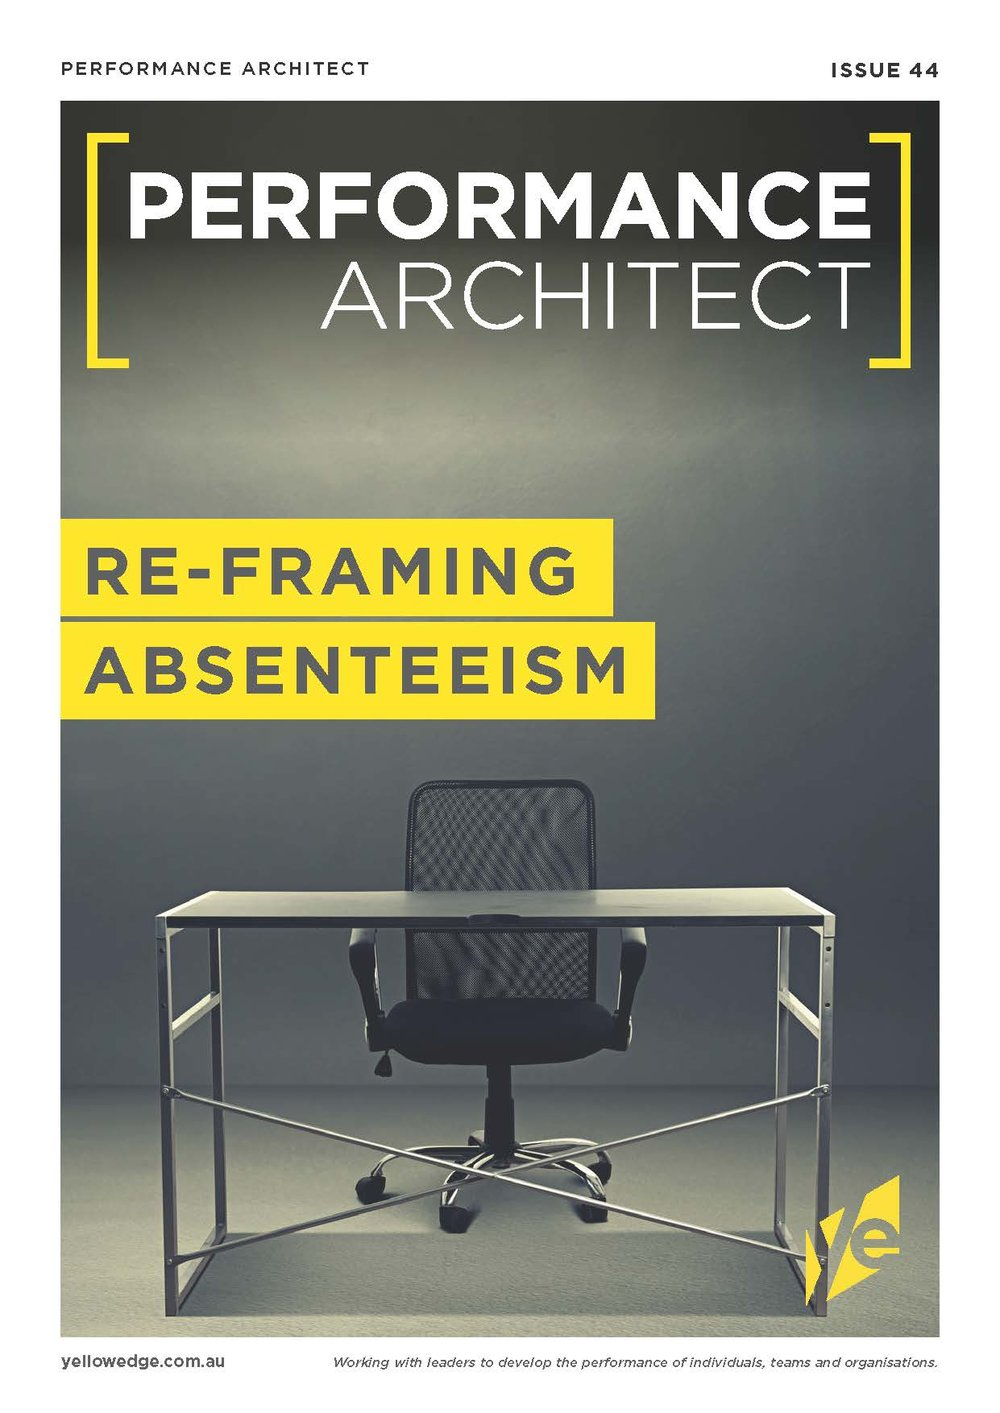 Re-framing absenteeism